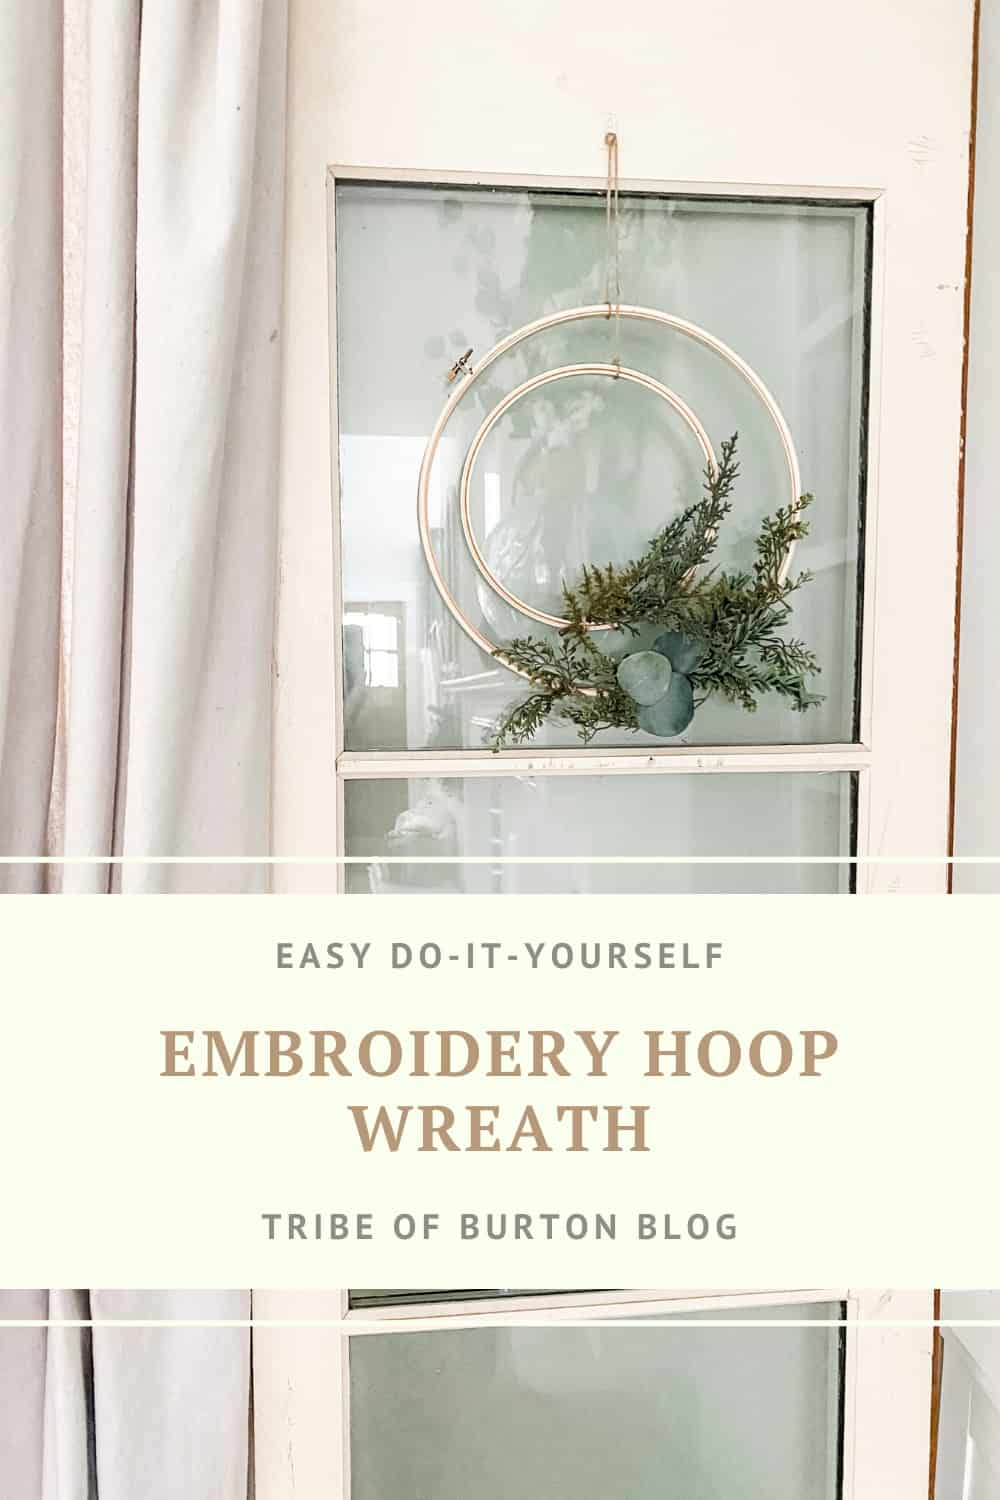 Pin for the post on the embroidery hoop wreath